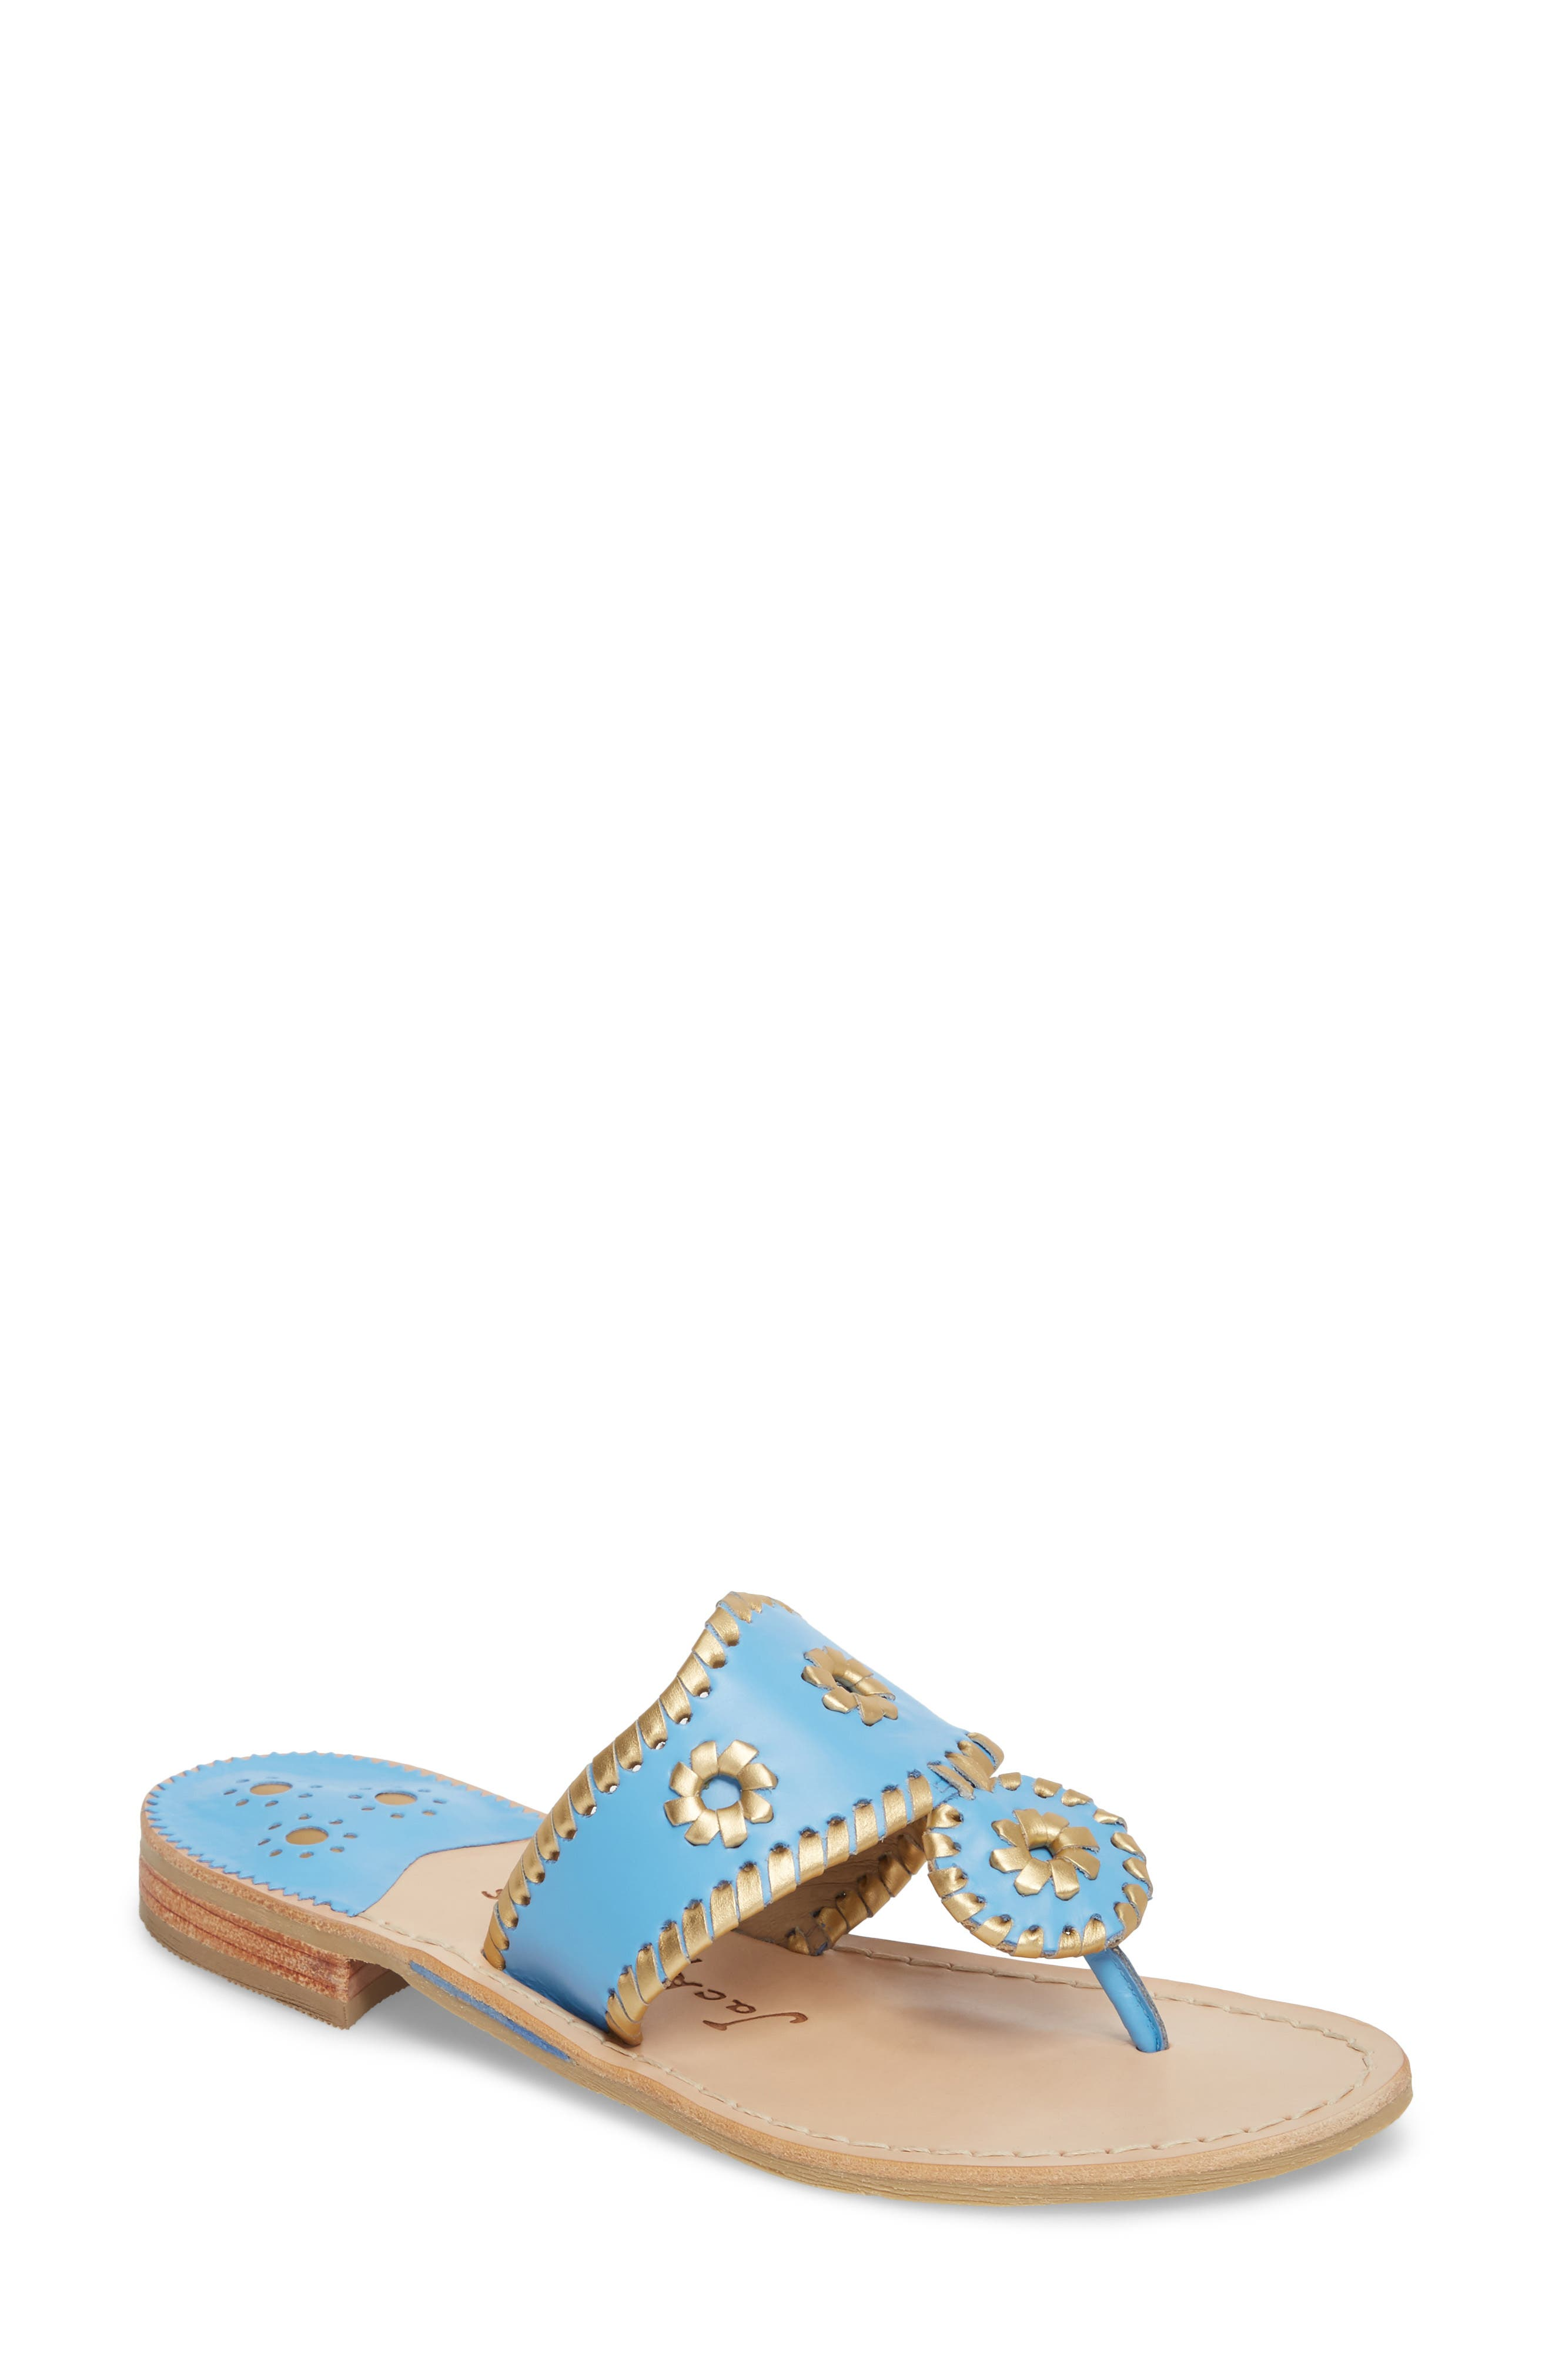 Hollis Flat Sandal,                             Main thumbnail 1, color,                             French Blue Leather